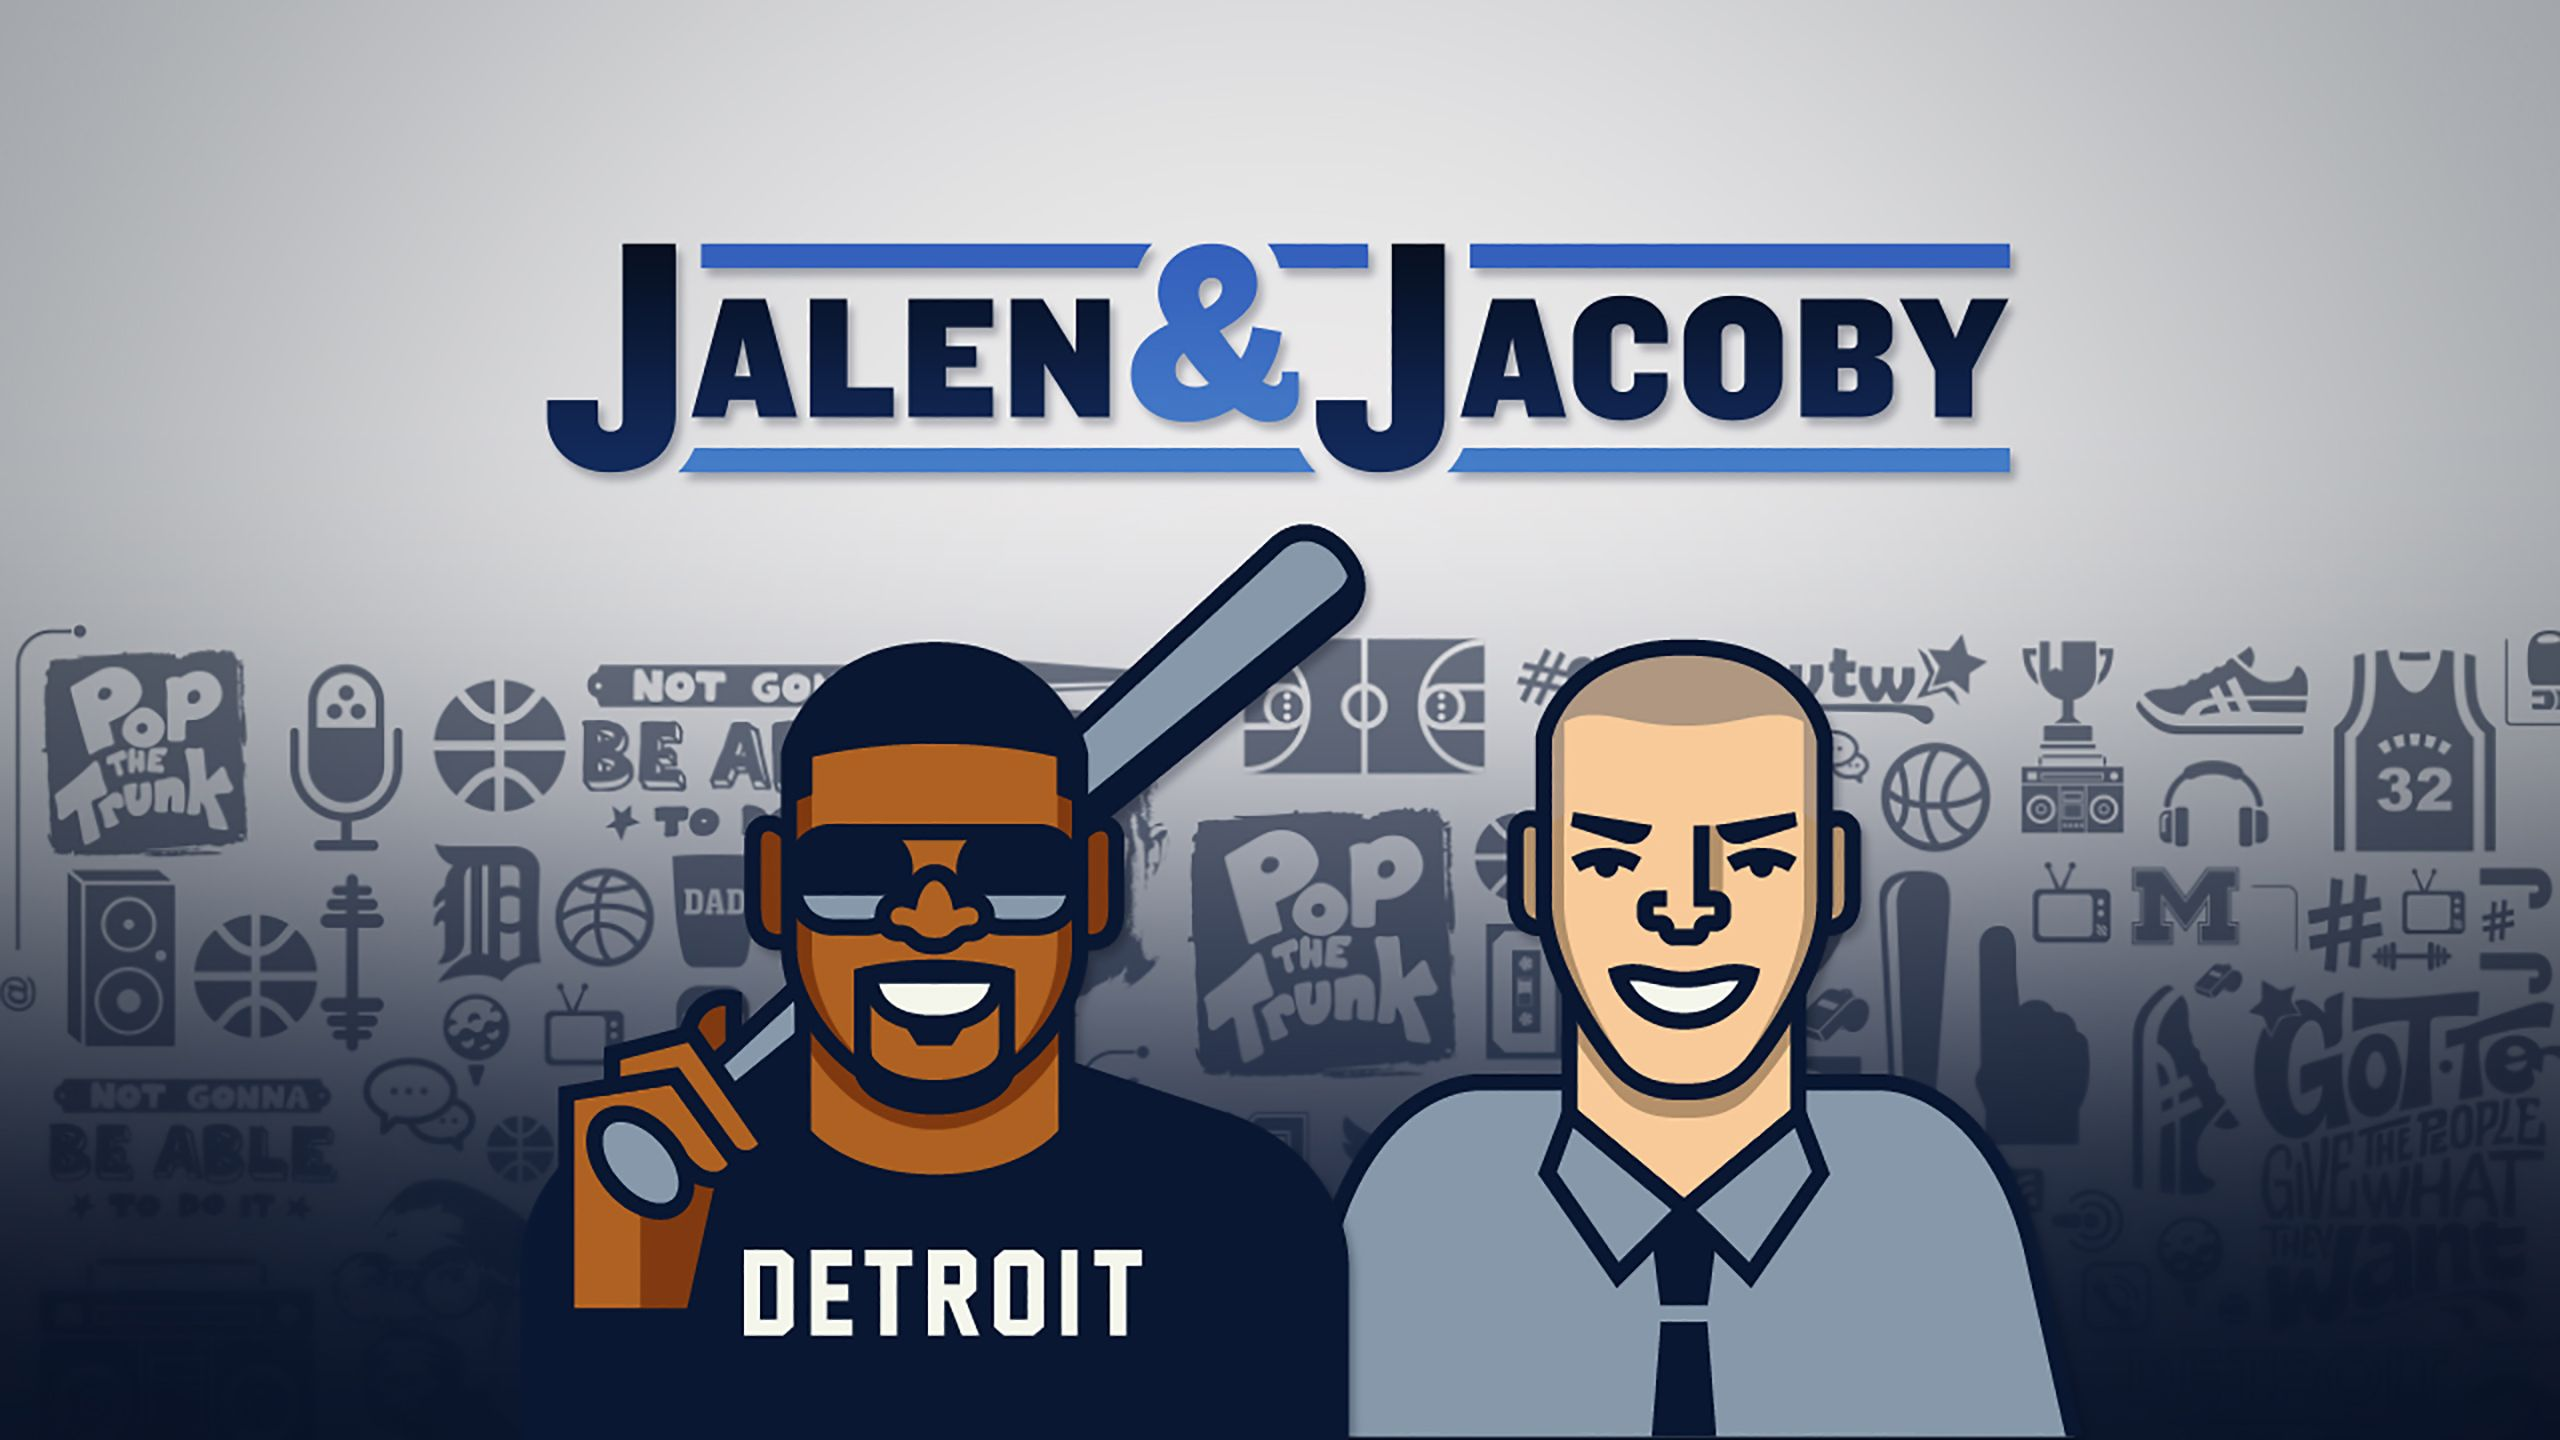 Wed, 11/22 - Jalen & Jacoby